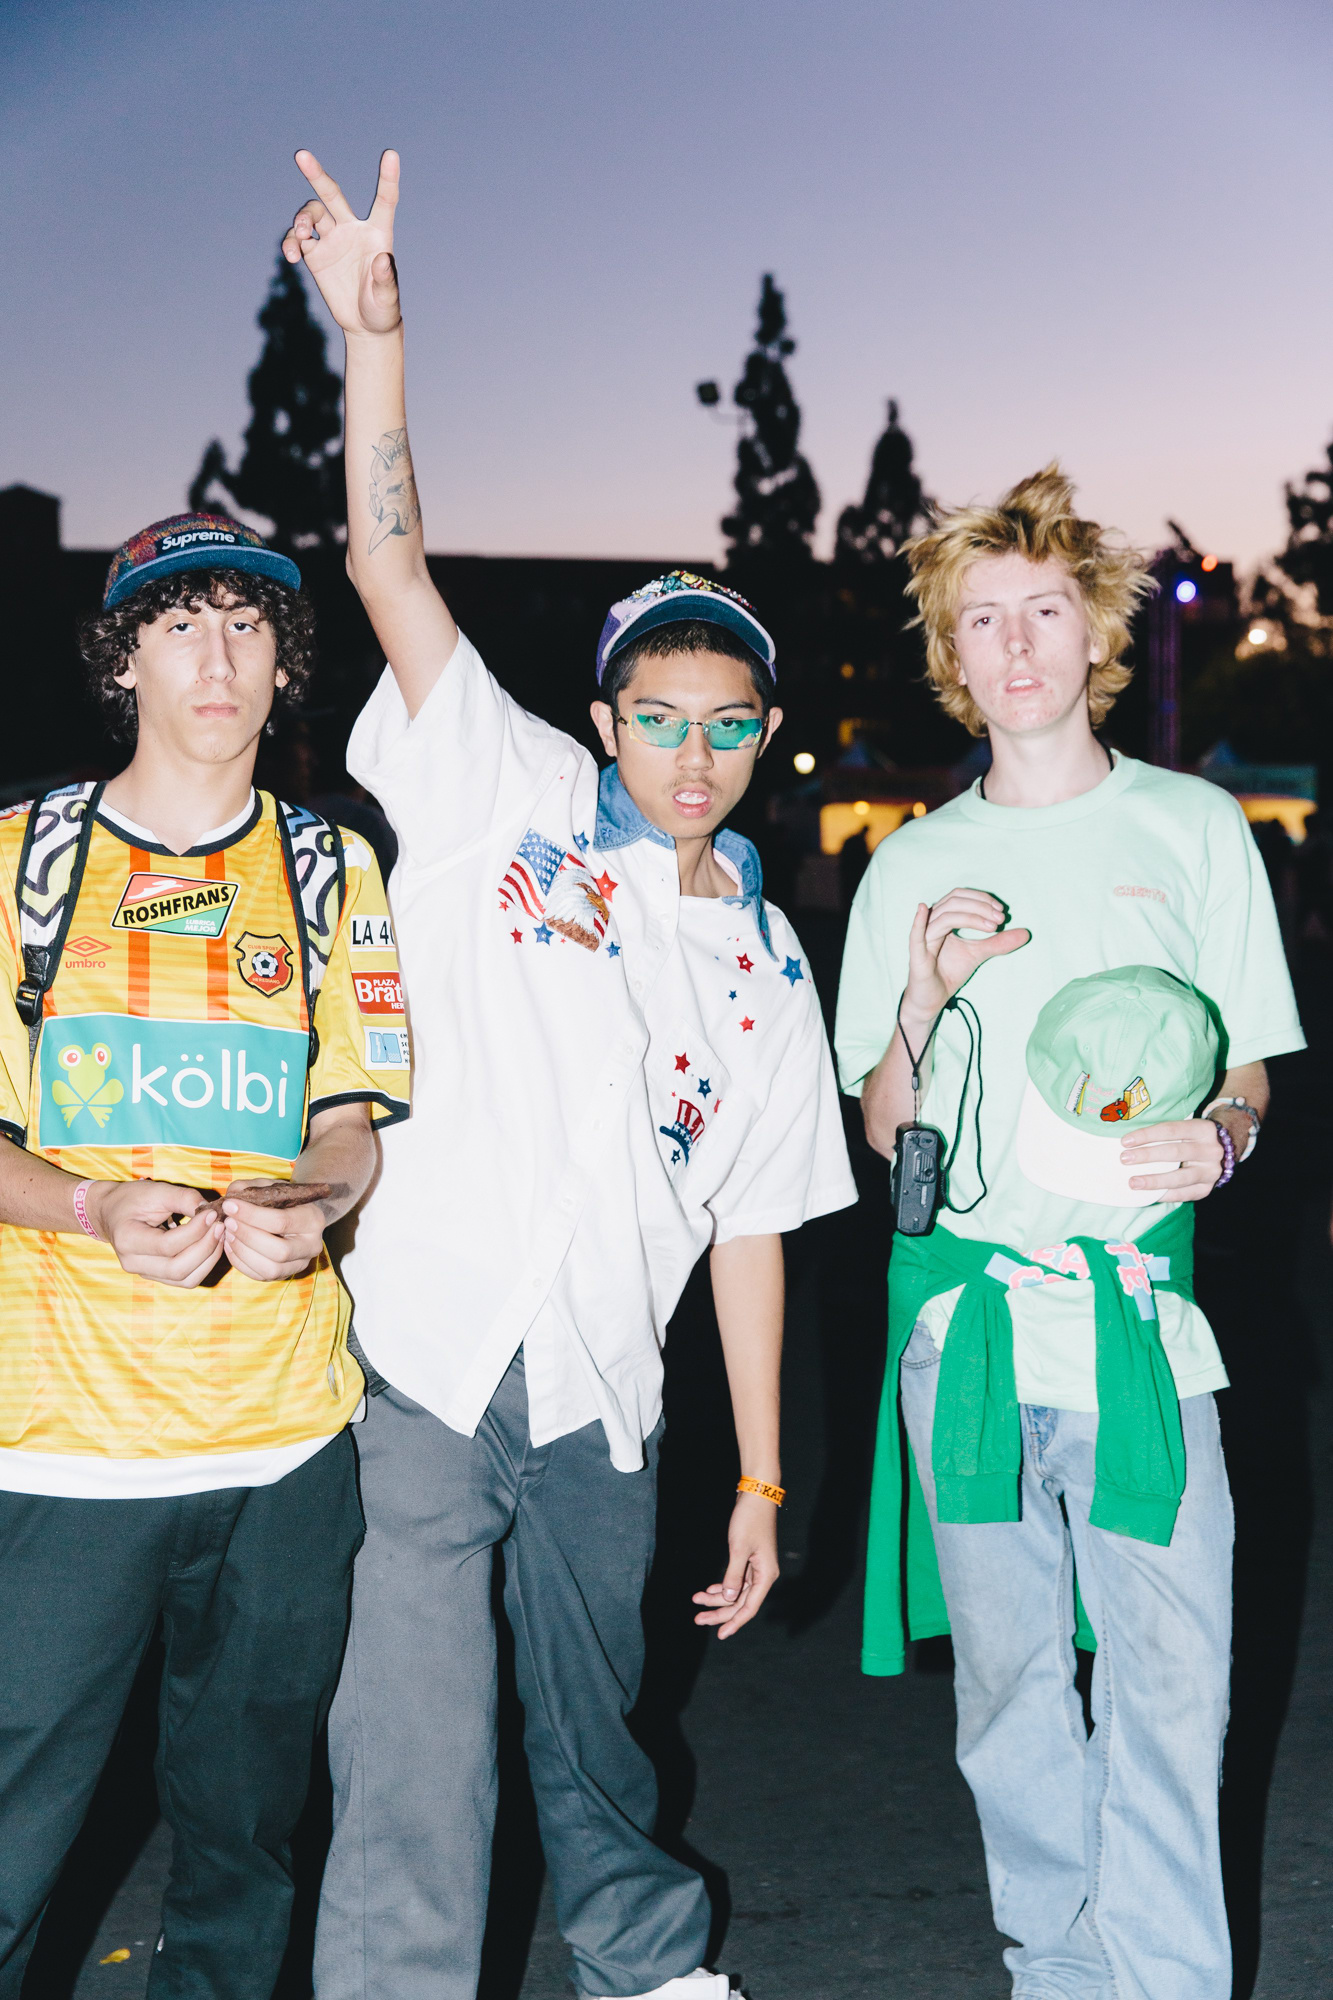 29 Pictures That Perfectly Encapsulate Camp Flog Gnaw's Insane Style